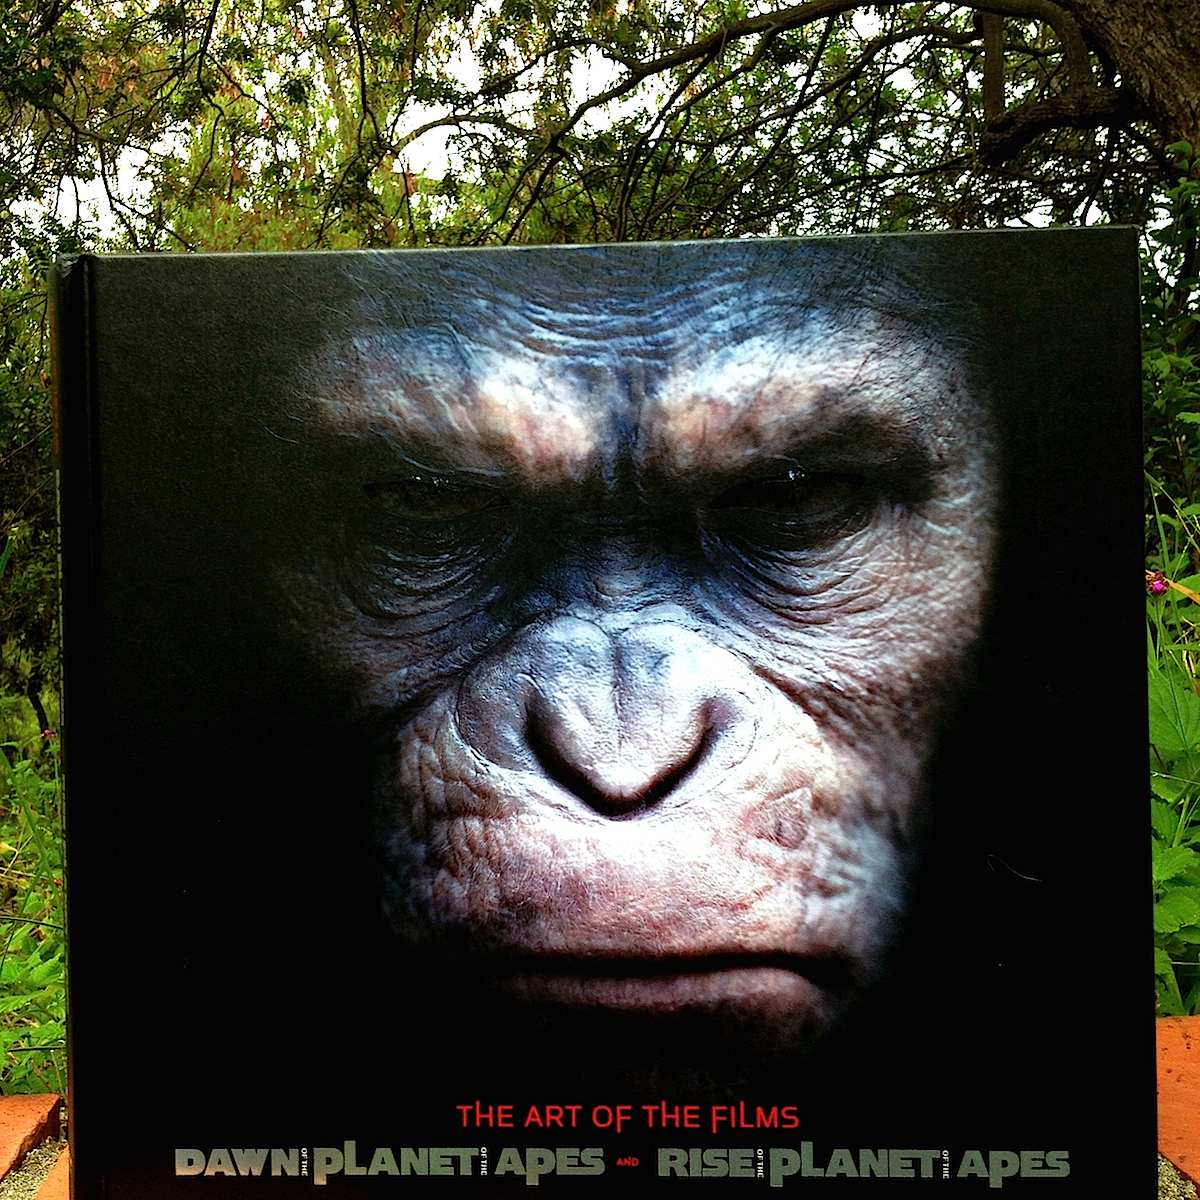 Dawn of the Planet of the Apes and Rise of the Planet of the Apes: The Art of the Films